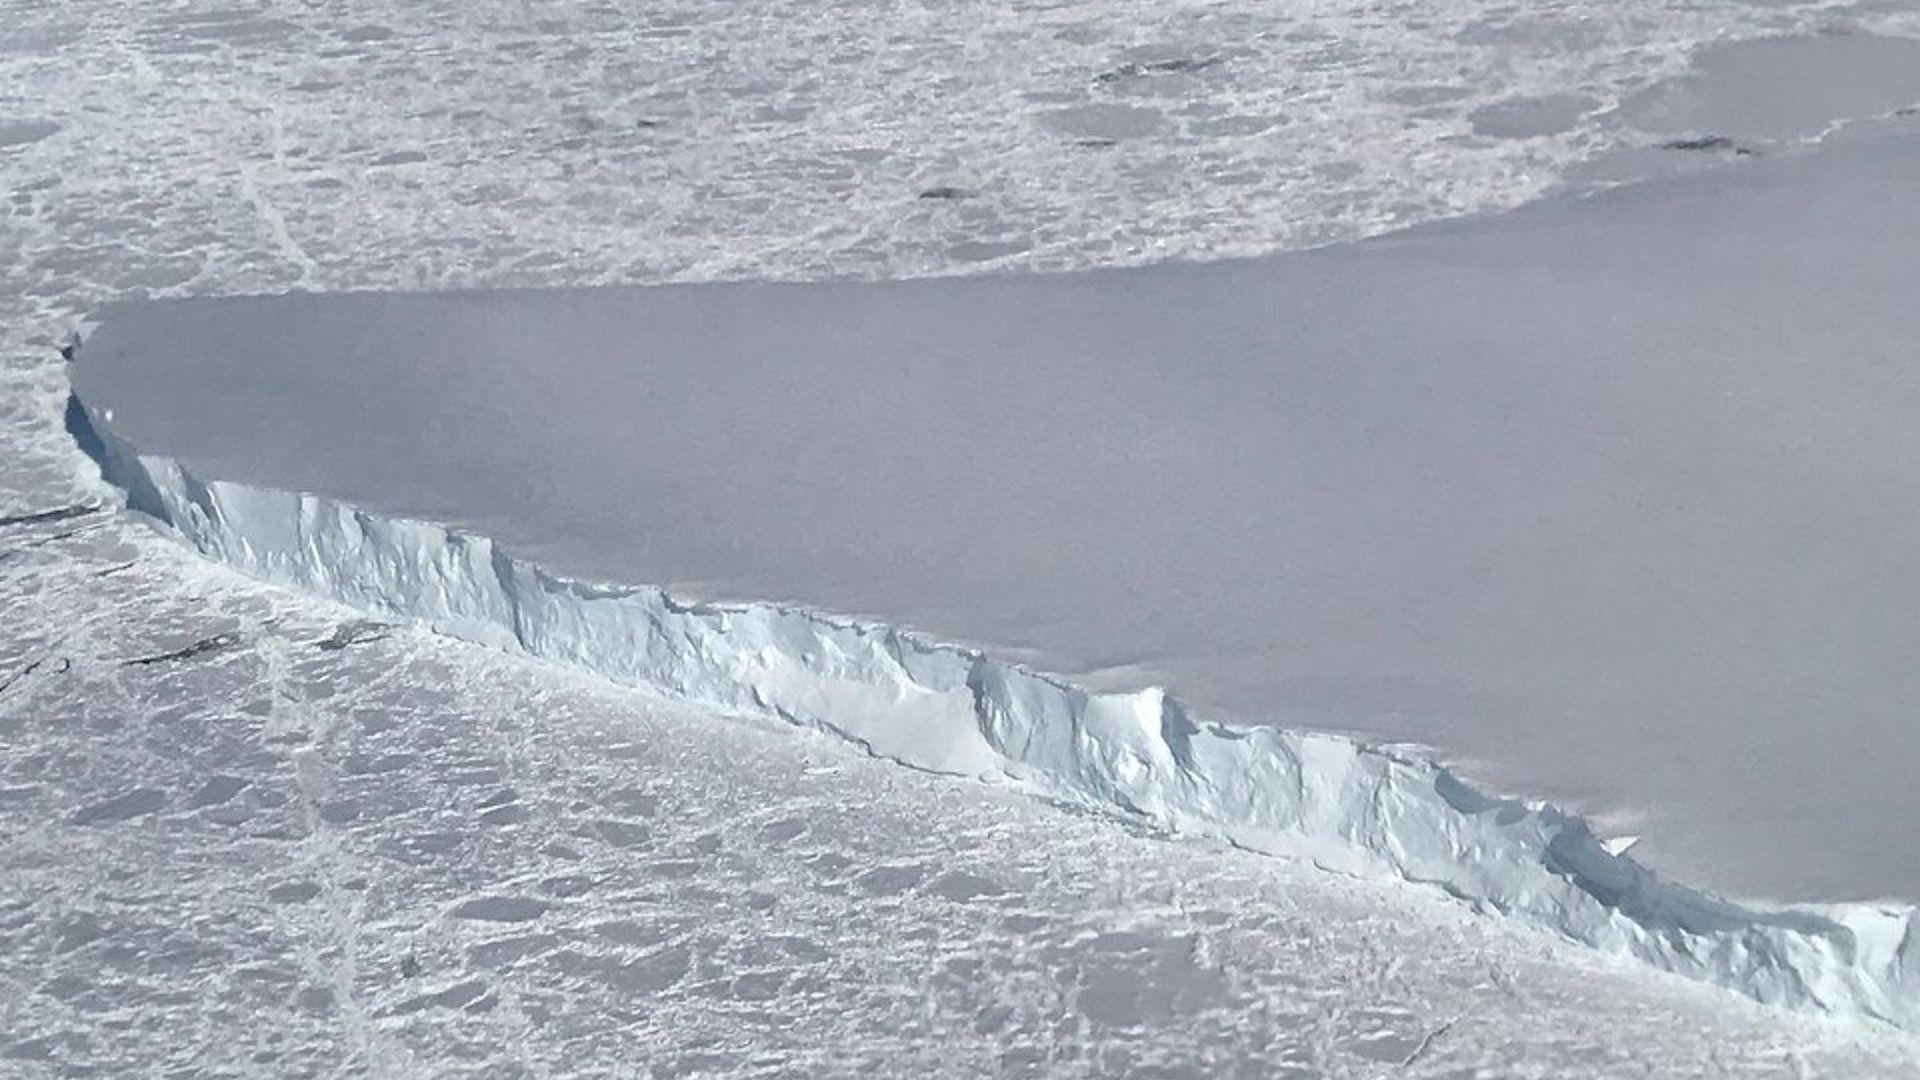 An inlet filled with sea ice around Venable Ice Shelf.